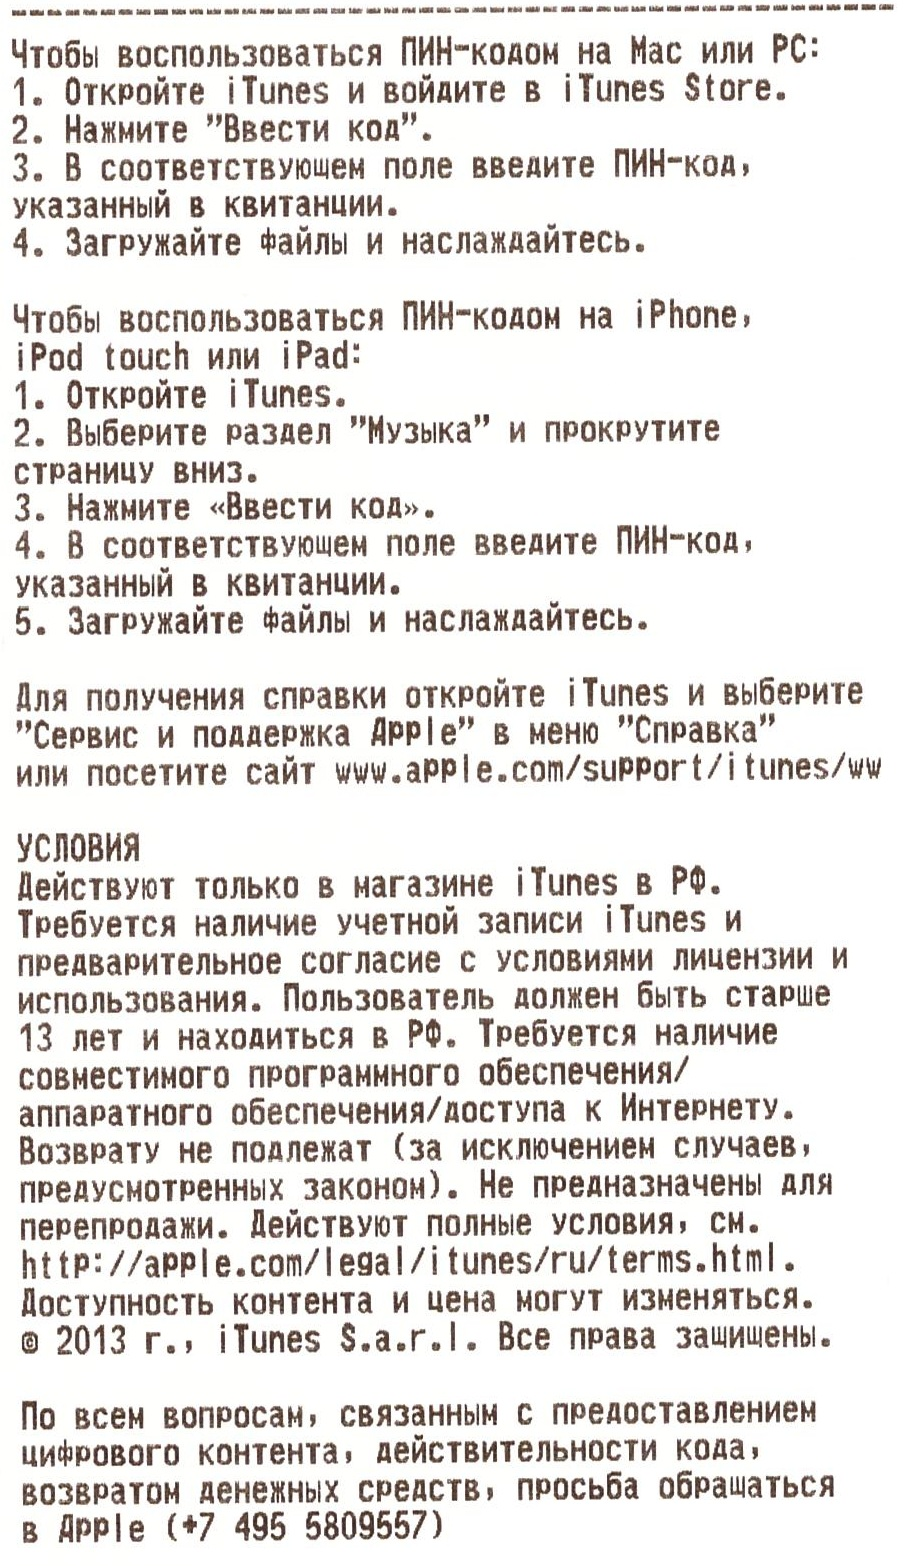 iTunes Gift Card (Russia) 500 rubles (PHOTO CODE)